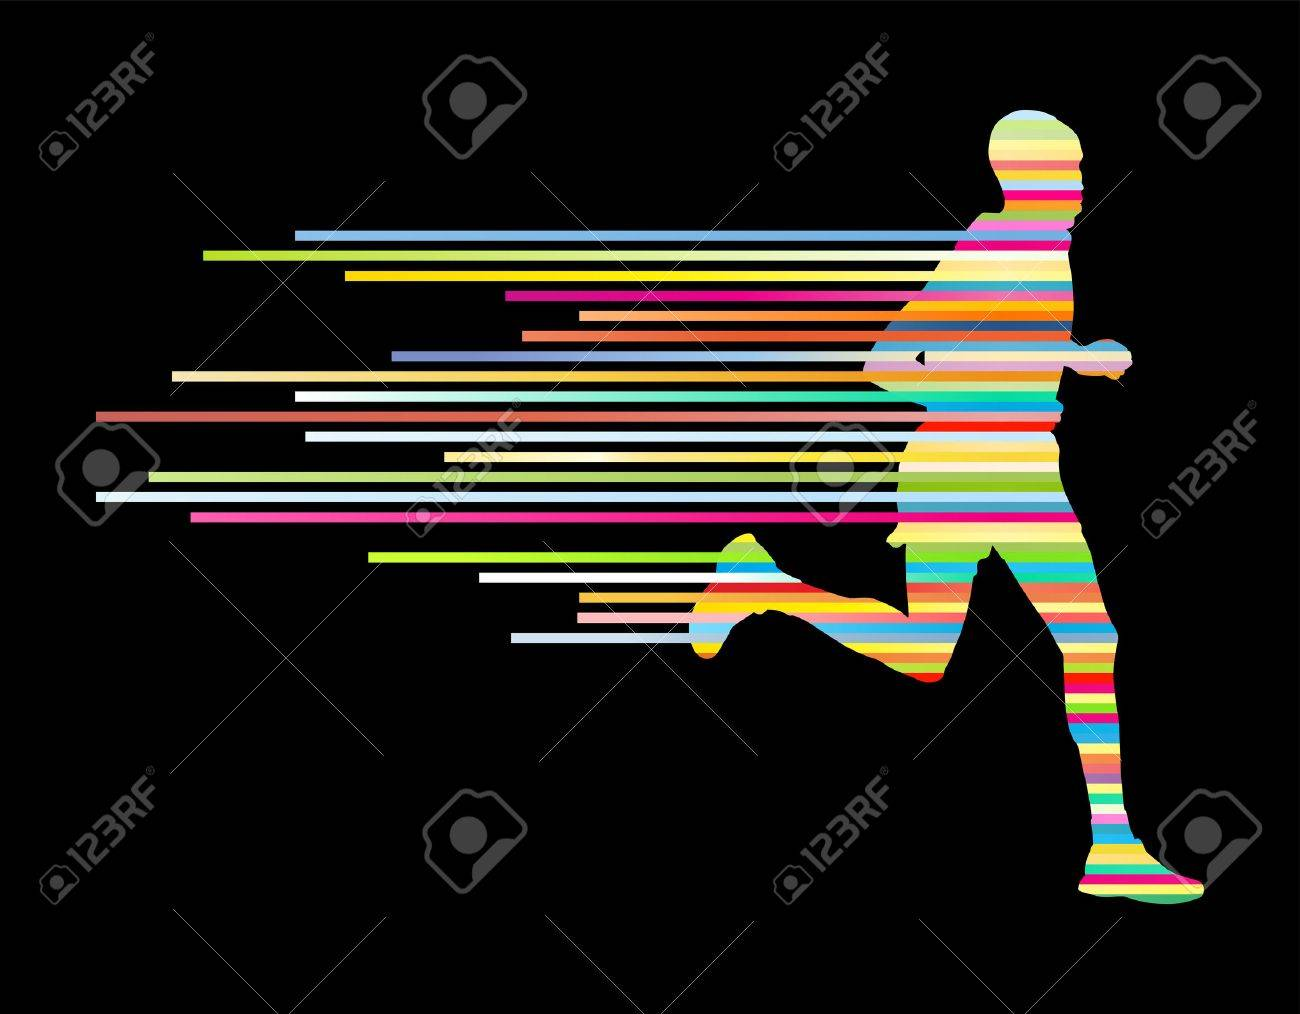 Man runner silhouette vector background template concept made of stripes - 36769509